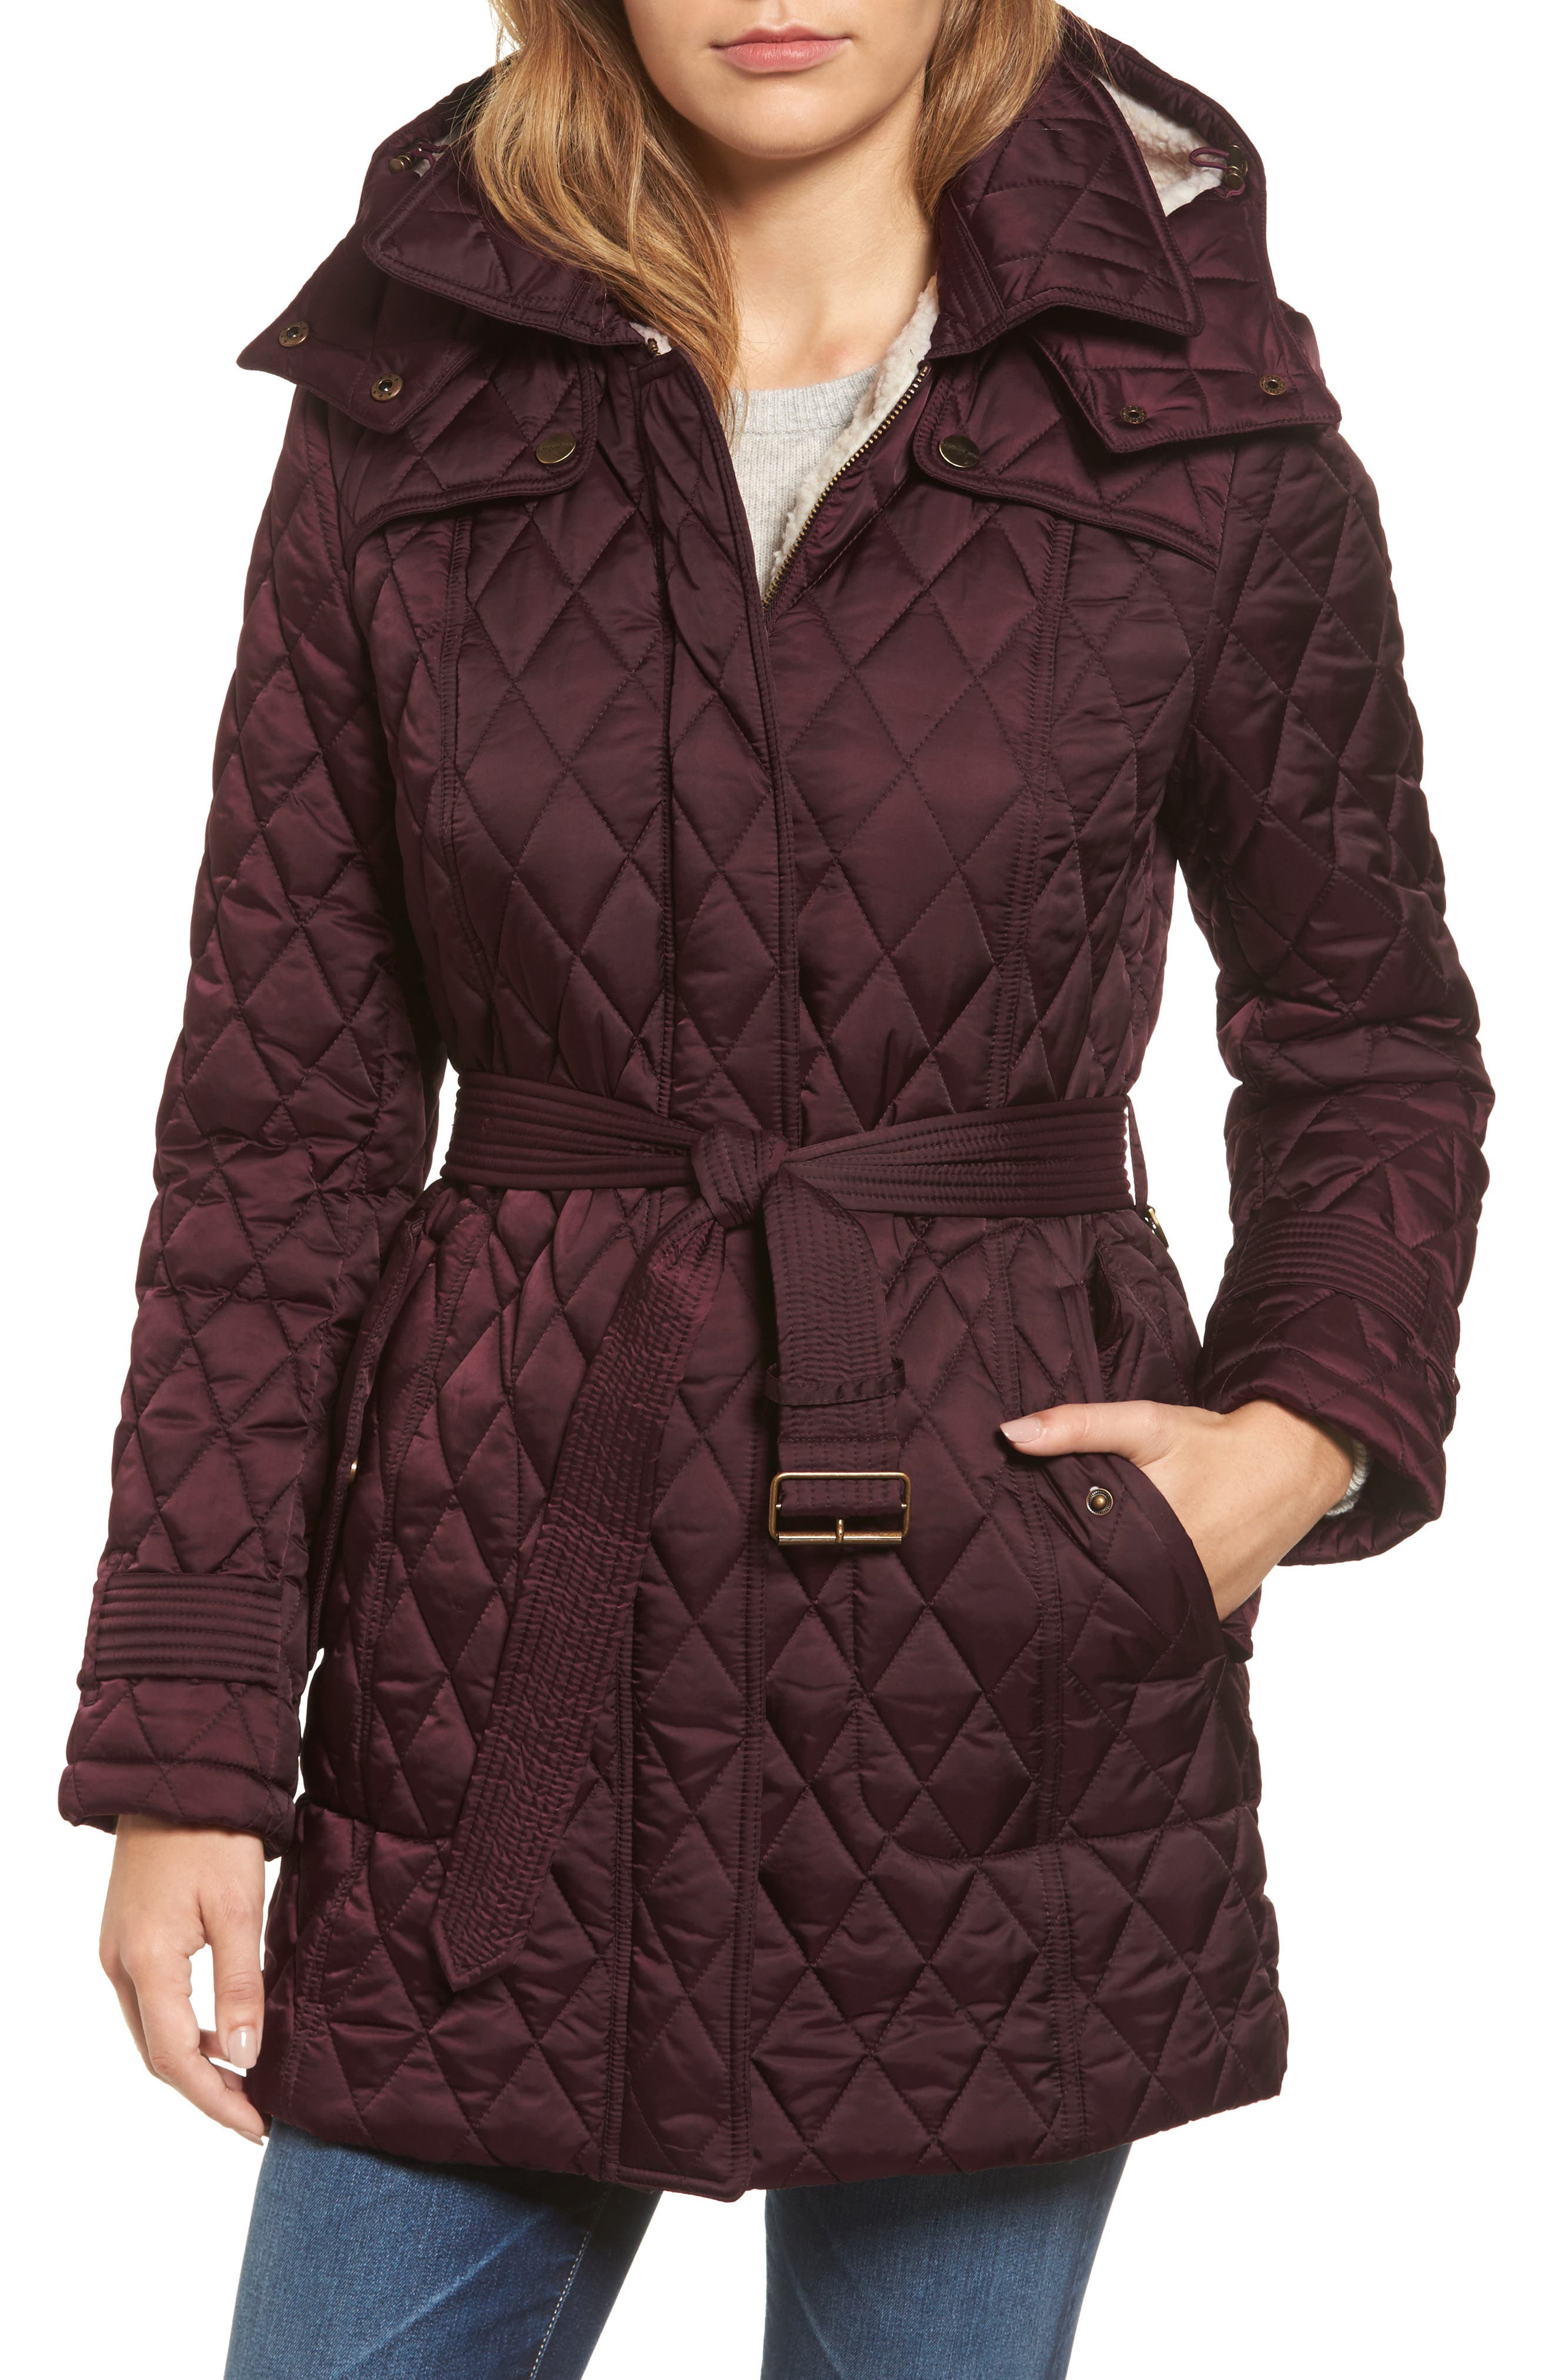 Alternate Image 1 Selected - London Fog Quilted Coat with Faux Shearling Lining